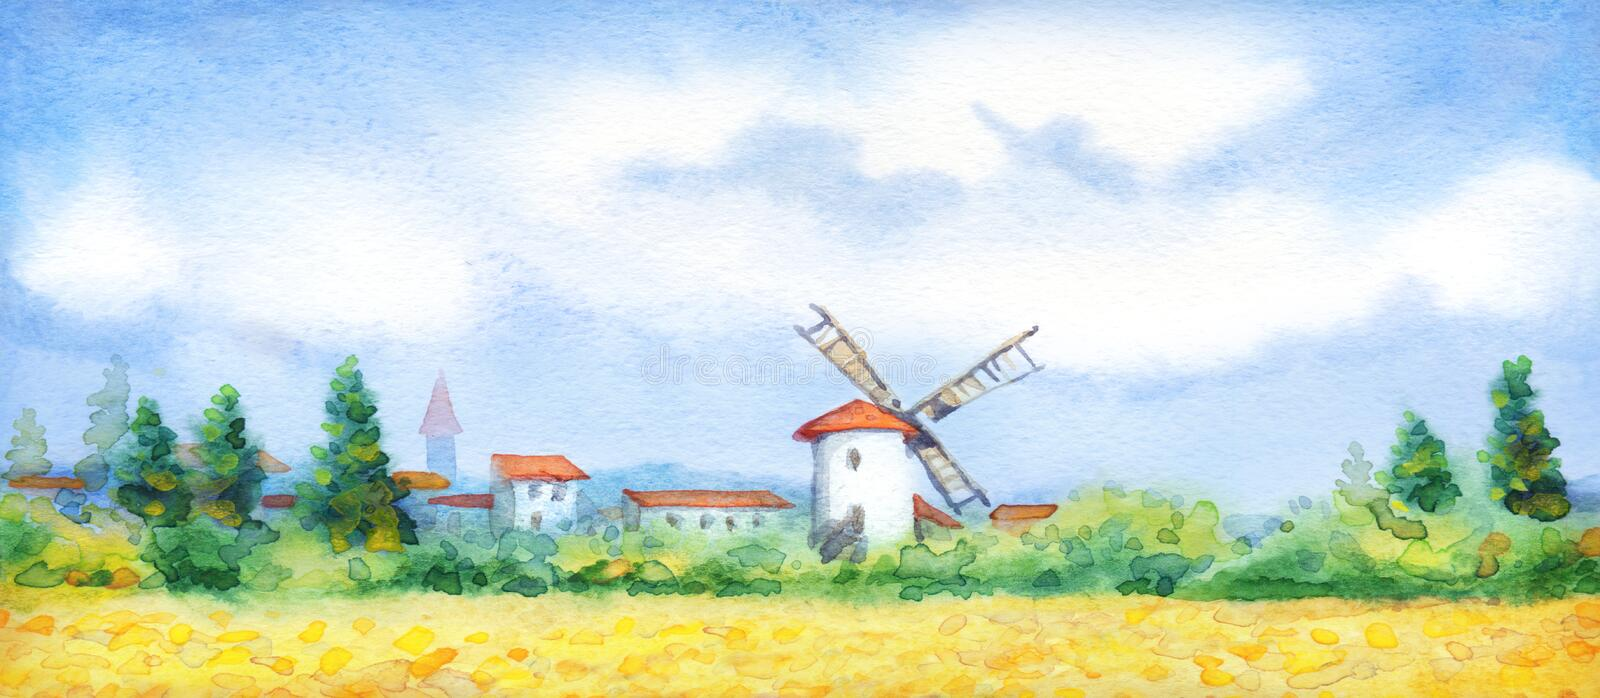 Watercolor landscape. Summer meadow near the barn. Ancient Holland Europe old city scene picture sketch text space. Blue sunny day. Golden dry ripe straw ear vector illustration